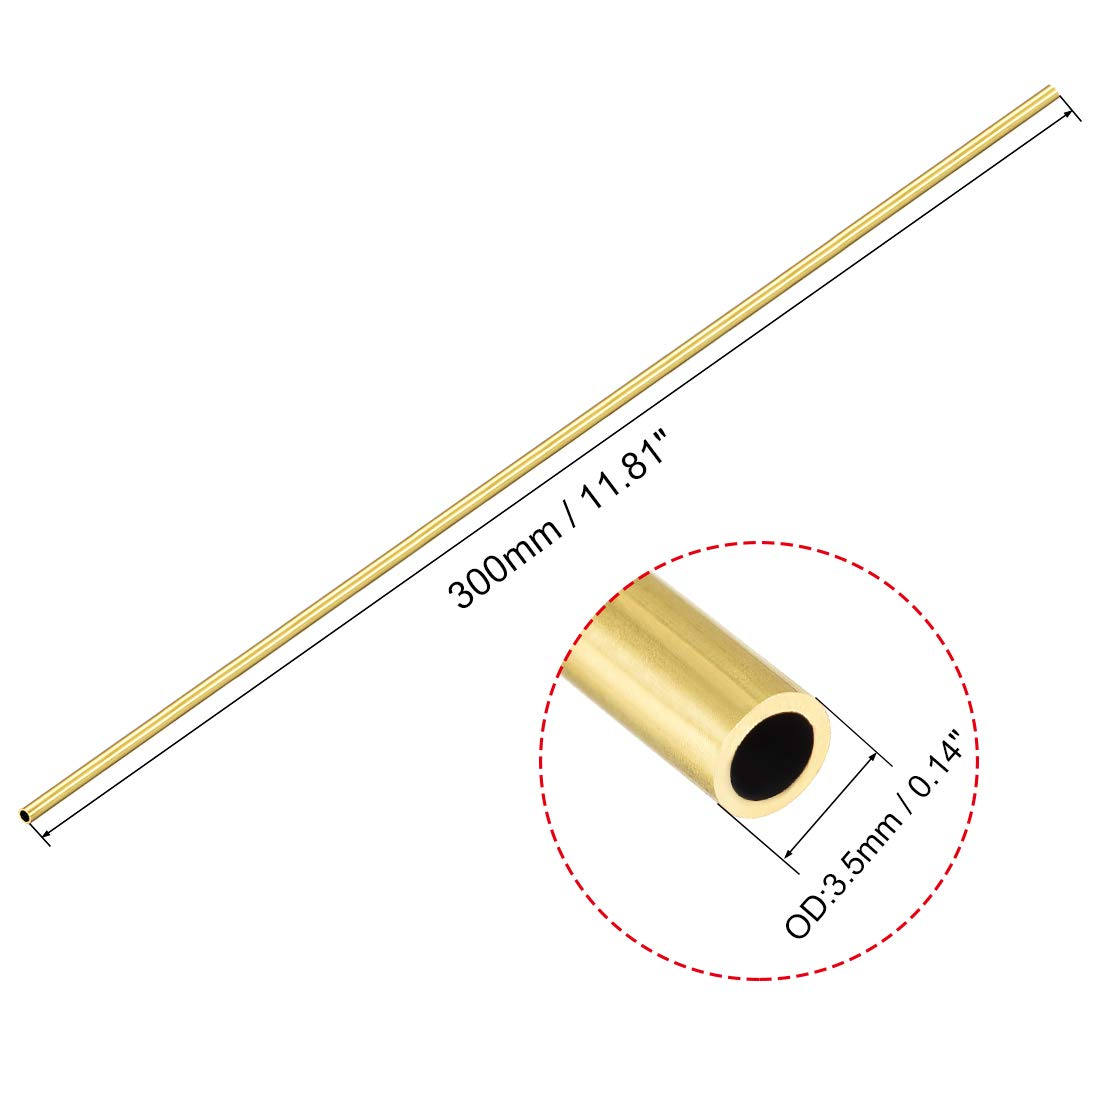 uxcell Brass Round Tube 300mm Length 3.5mm OD 0.5mm Wall Thickness Seamless Straight Pipe Tubing 2 Pcs